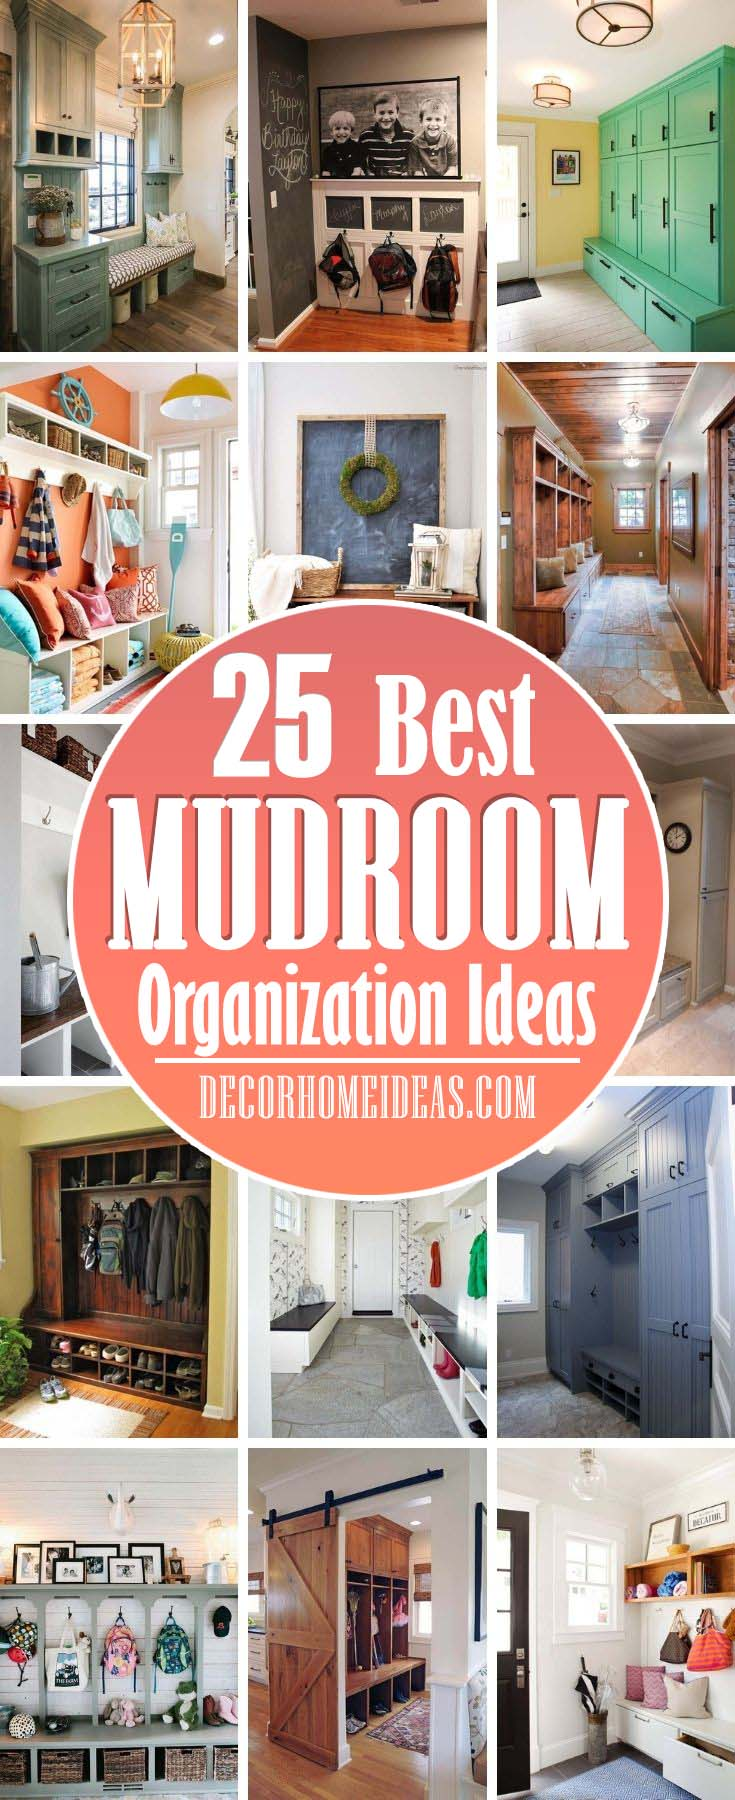 Best Mudroom Organization Ideas. The mudroom is the drop-zone for everything that comes in and goes out of the house. Set it up in the most functional way possible with these smart mudroom ideas and storage hacks. #decorhomeideas